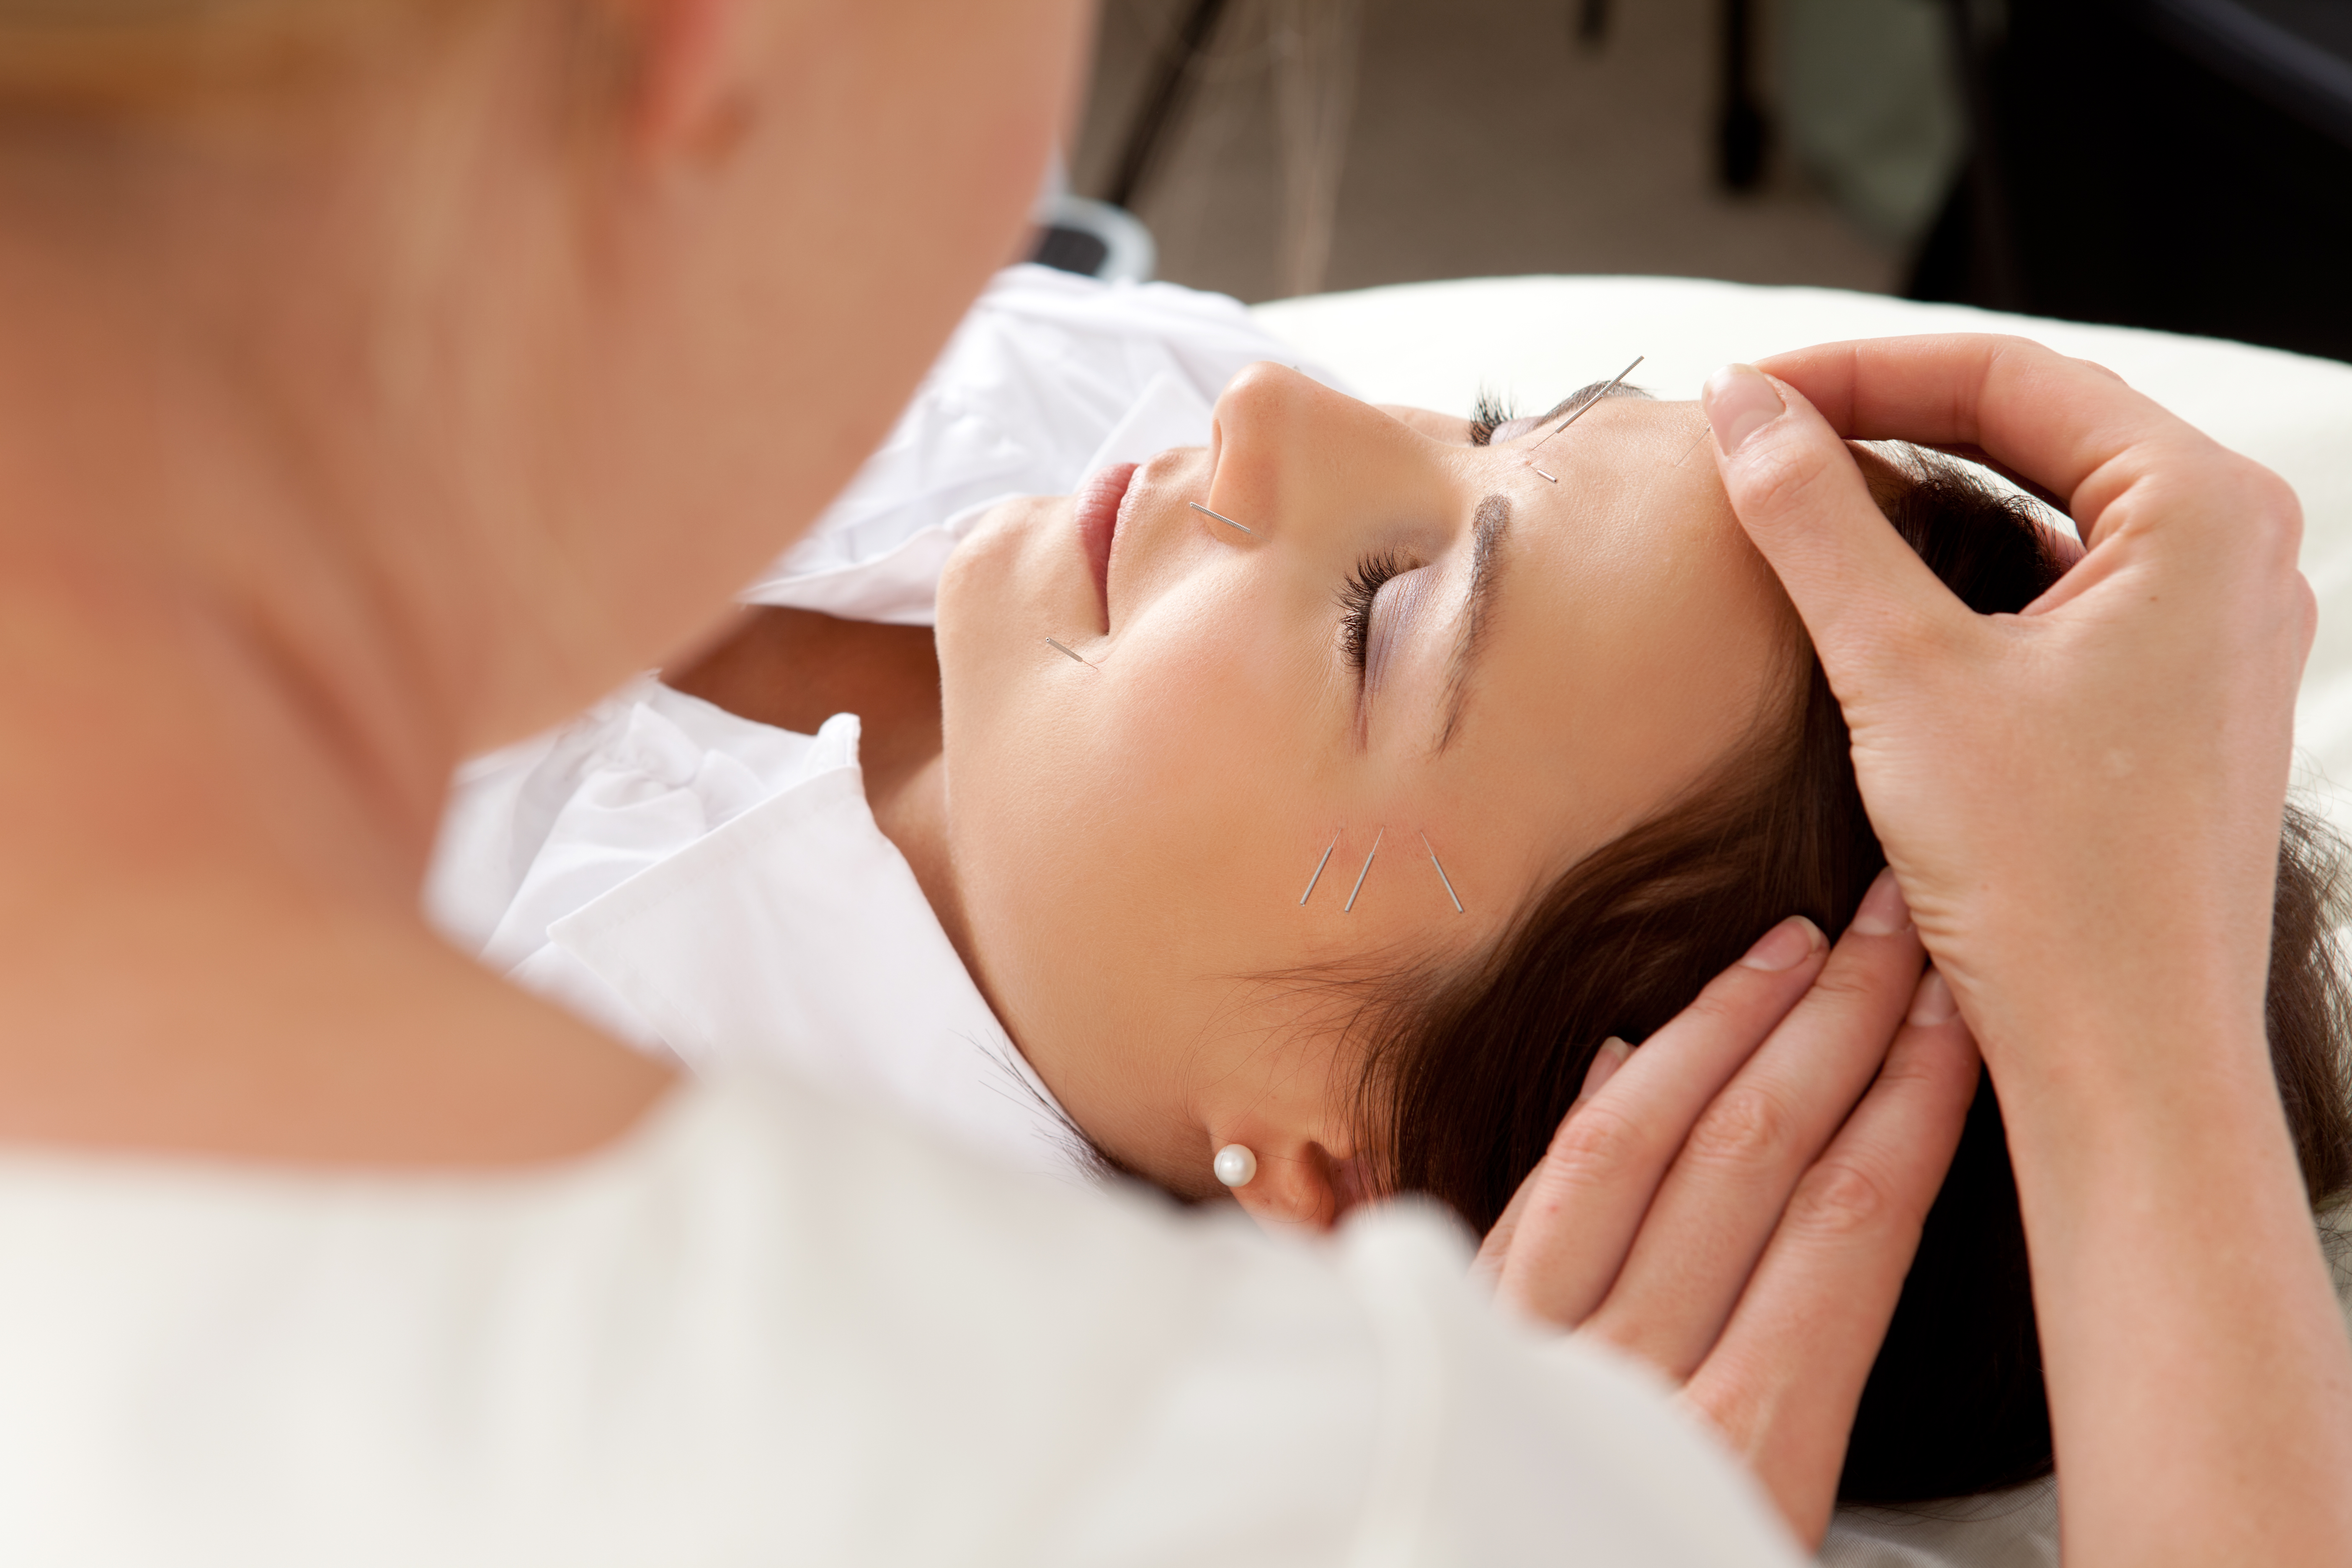 What are the effects of Acupuncture?